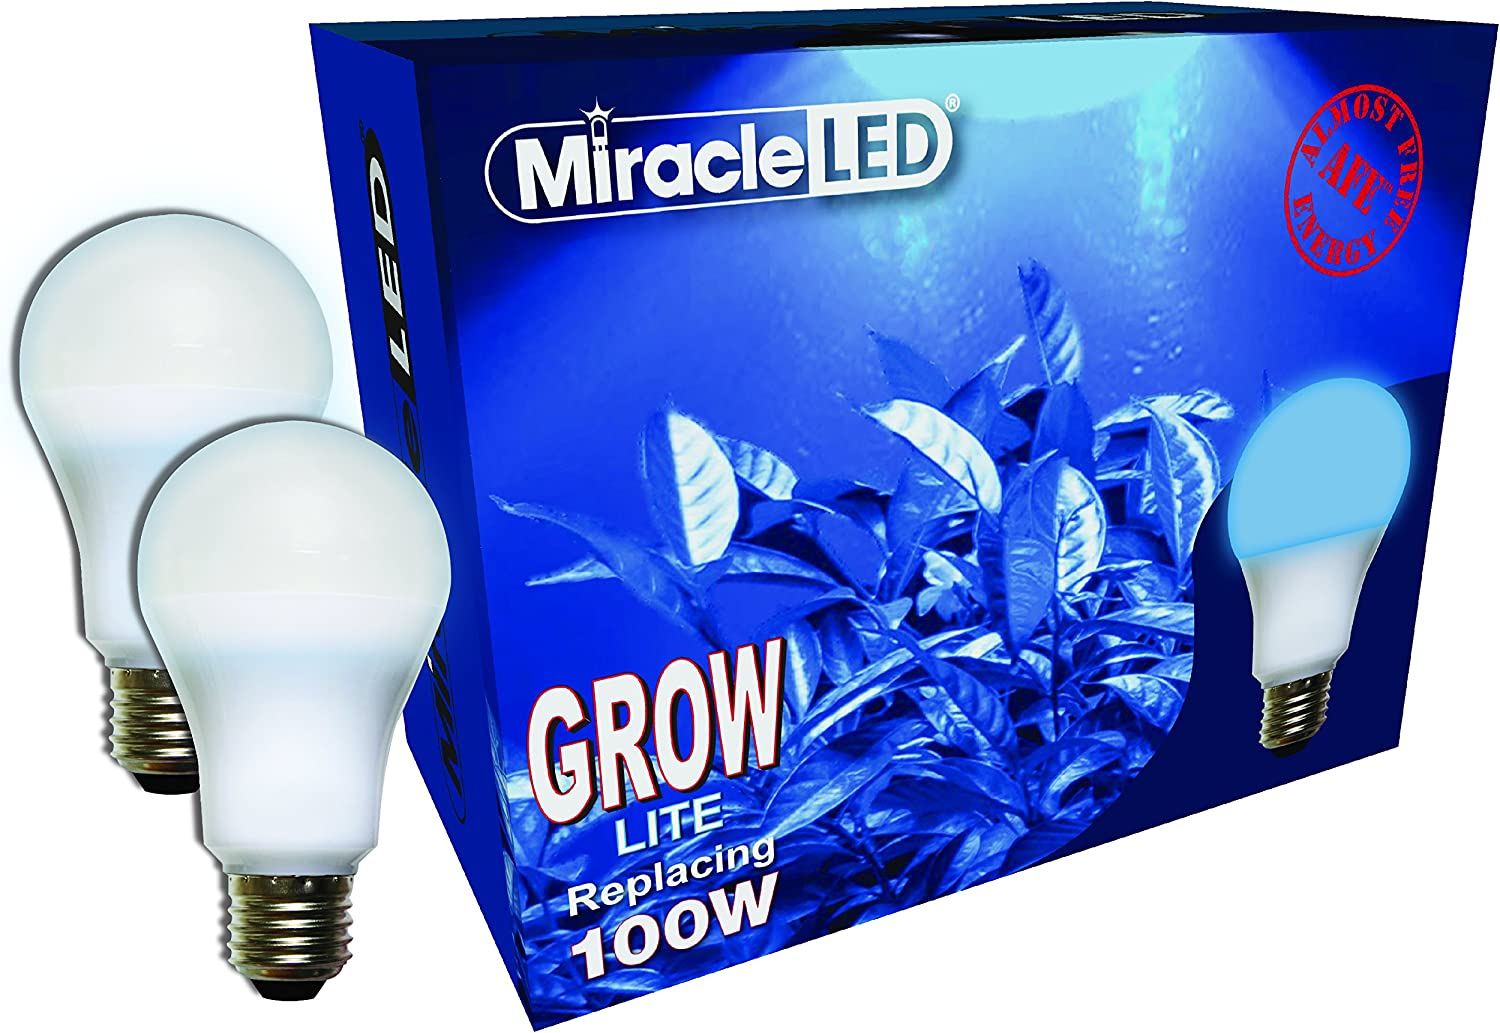 Miracle LED Almost Free Energy 100W Growth Starter Blue LED Grow Lite - Blue Light for Seed Starting and Strong Plant Stems in DIY Horticulture, Hydroponics, and Indoor Gardens (604299) 2Pack